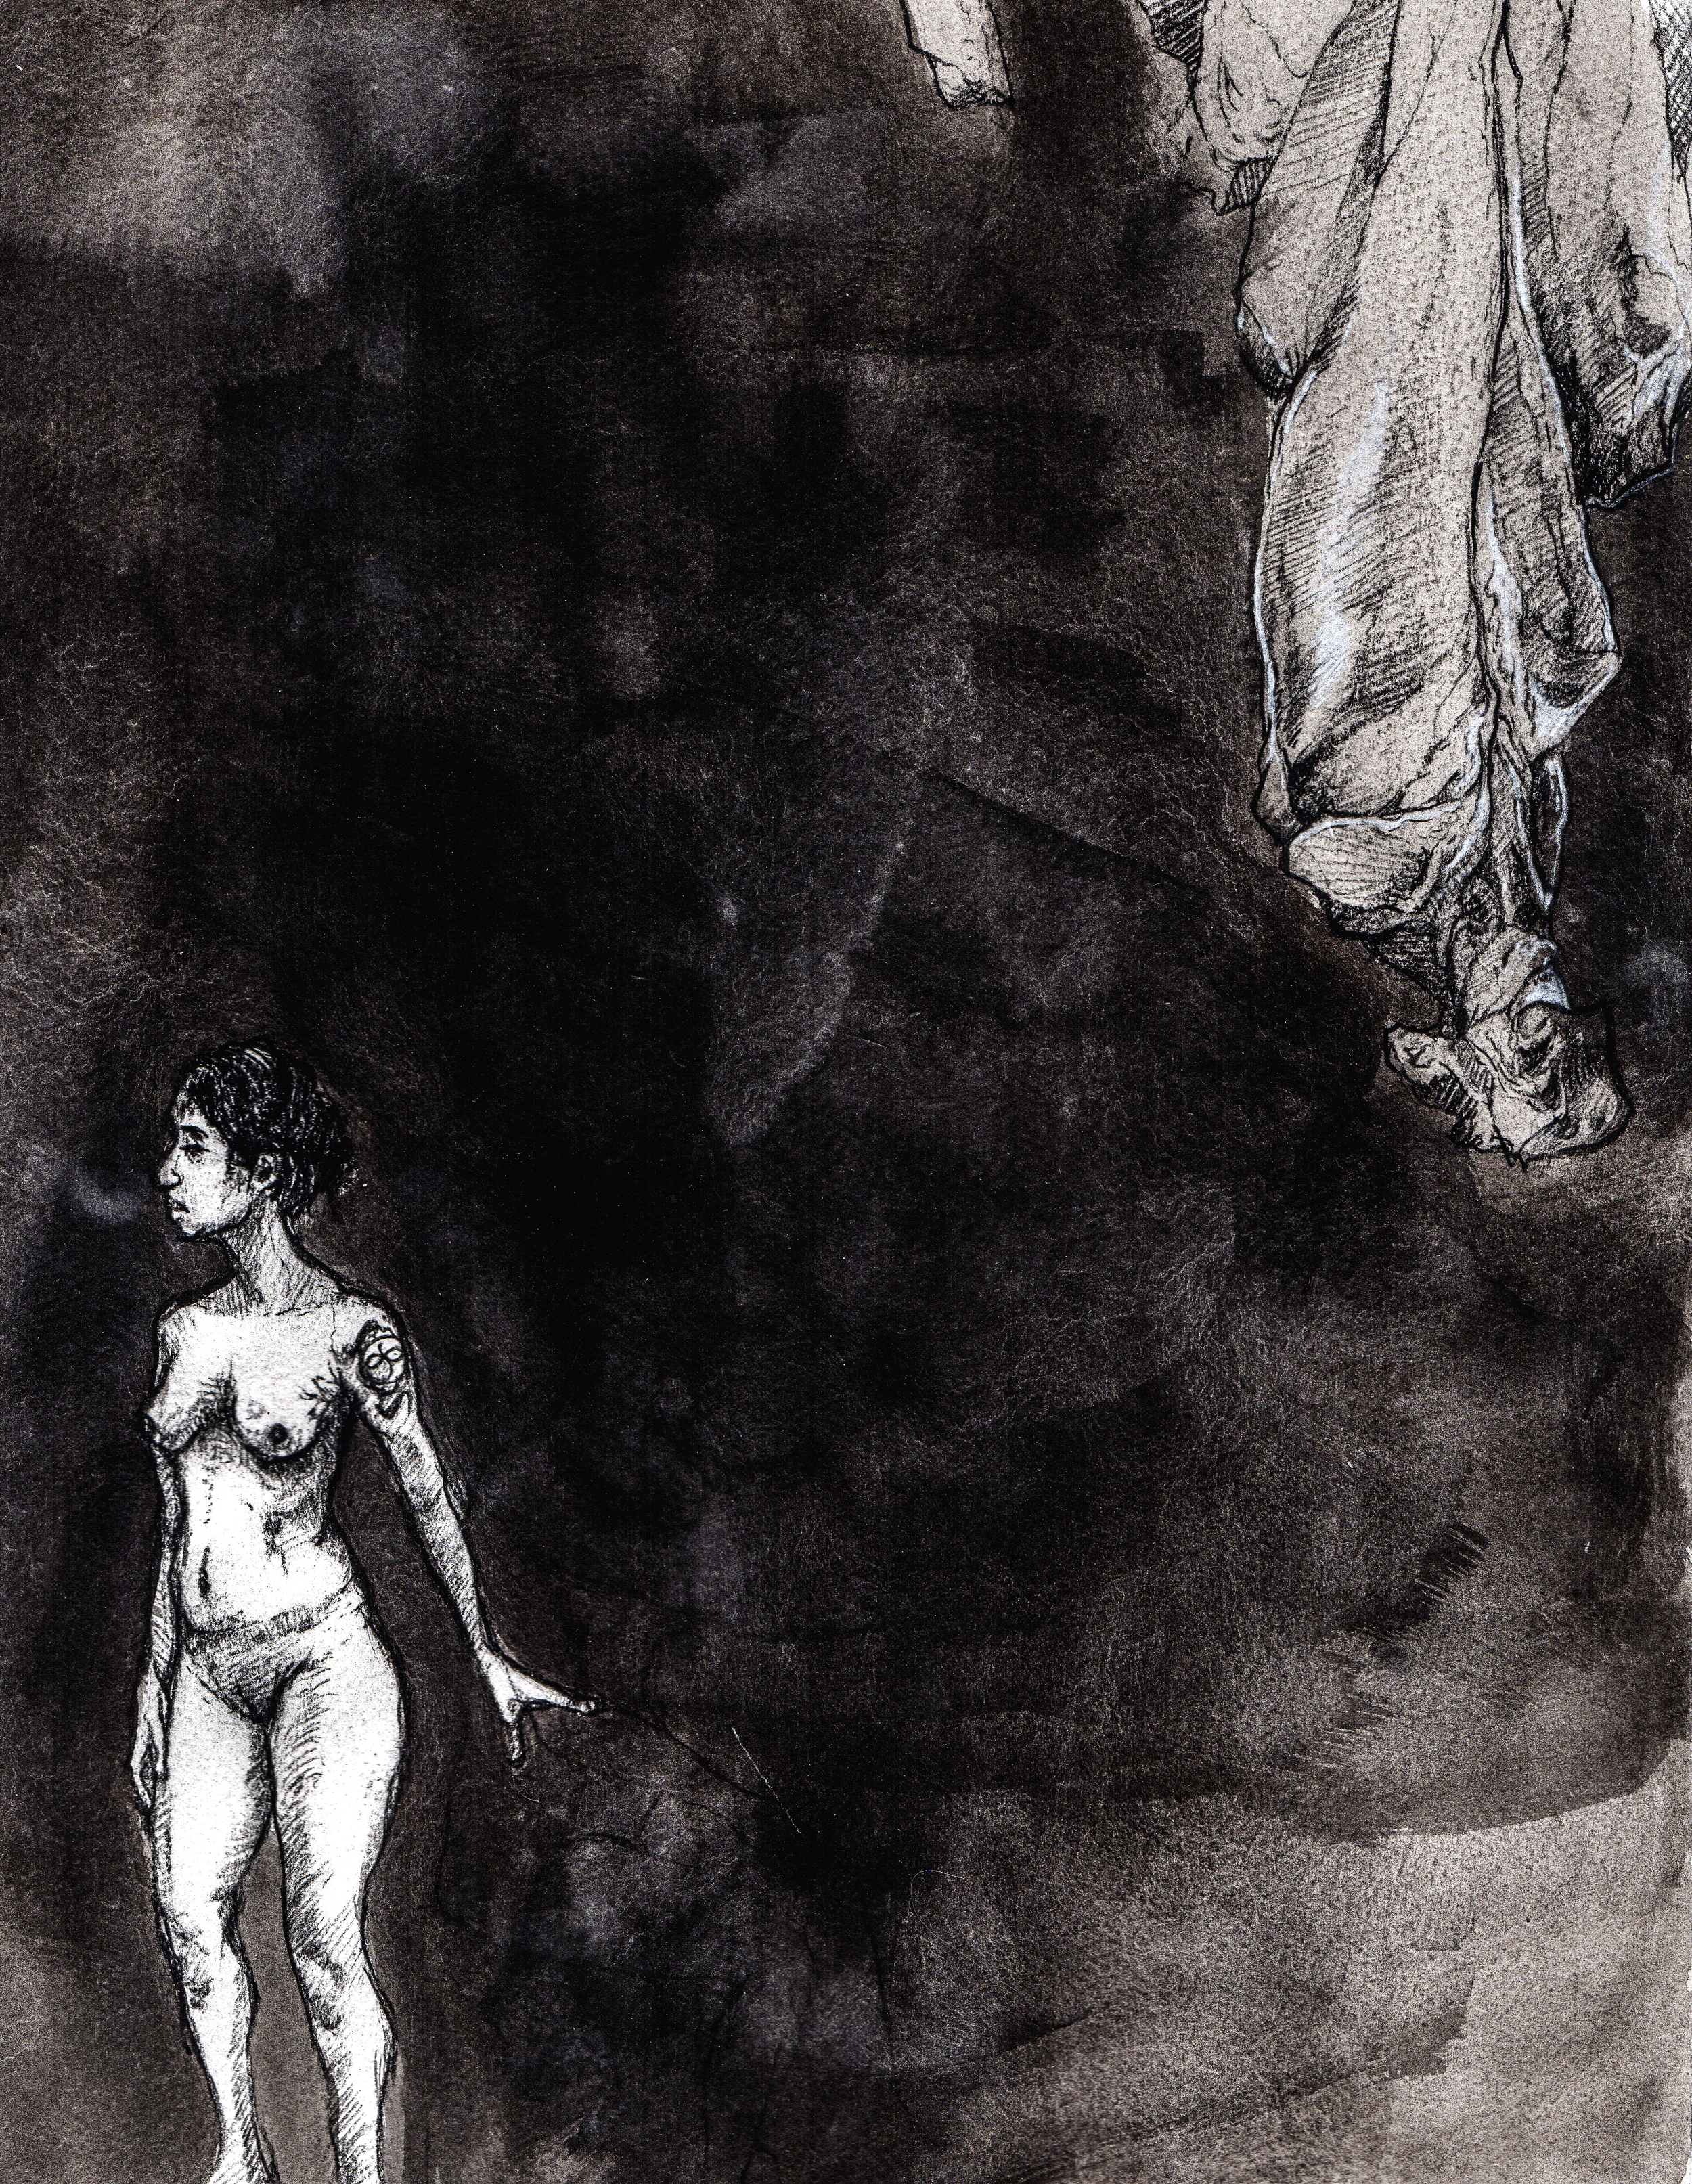 We held our lives by the whims that govern conversation  . 2013. 12 x 14 inches. Ink wash on paper.